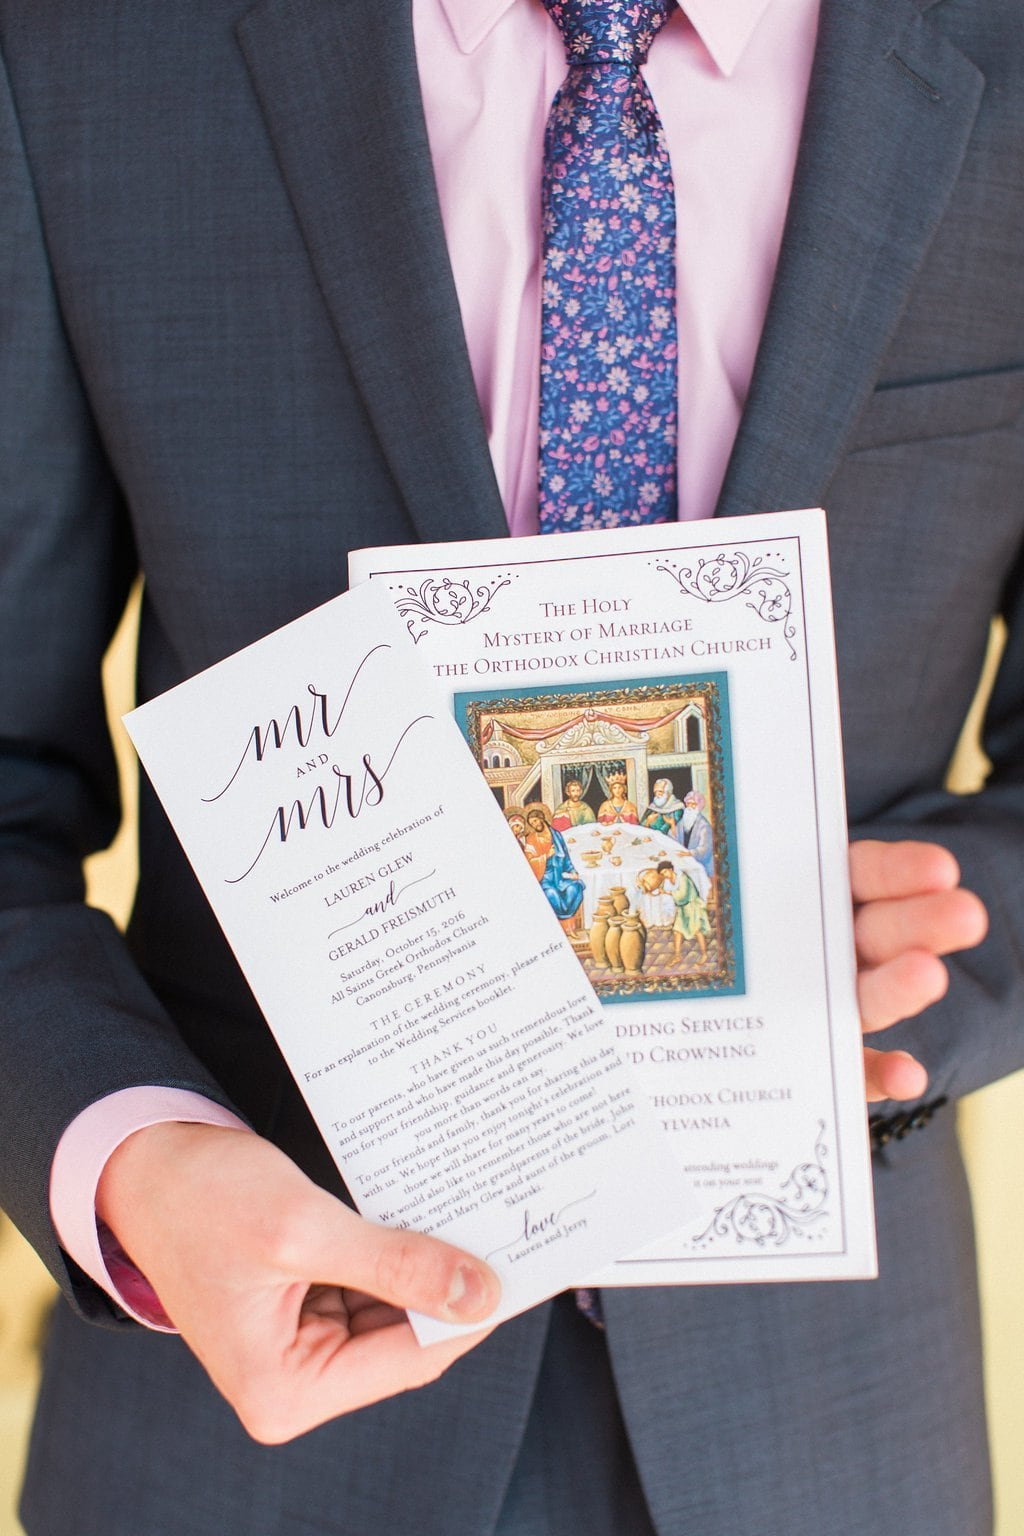 Wedding Programs held by a groomsman before the wedding ceremony